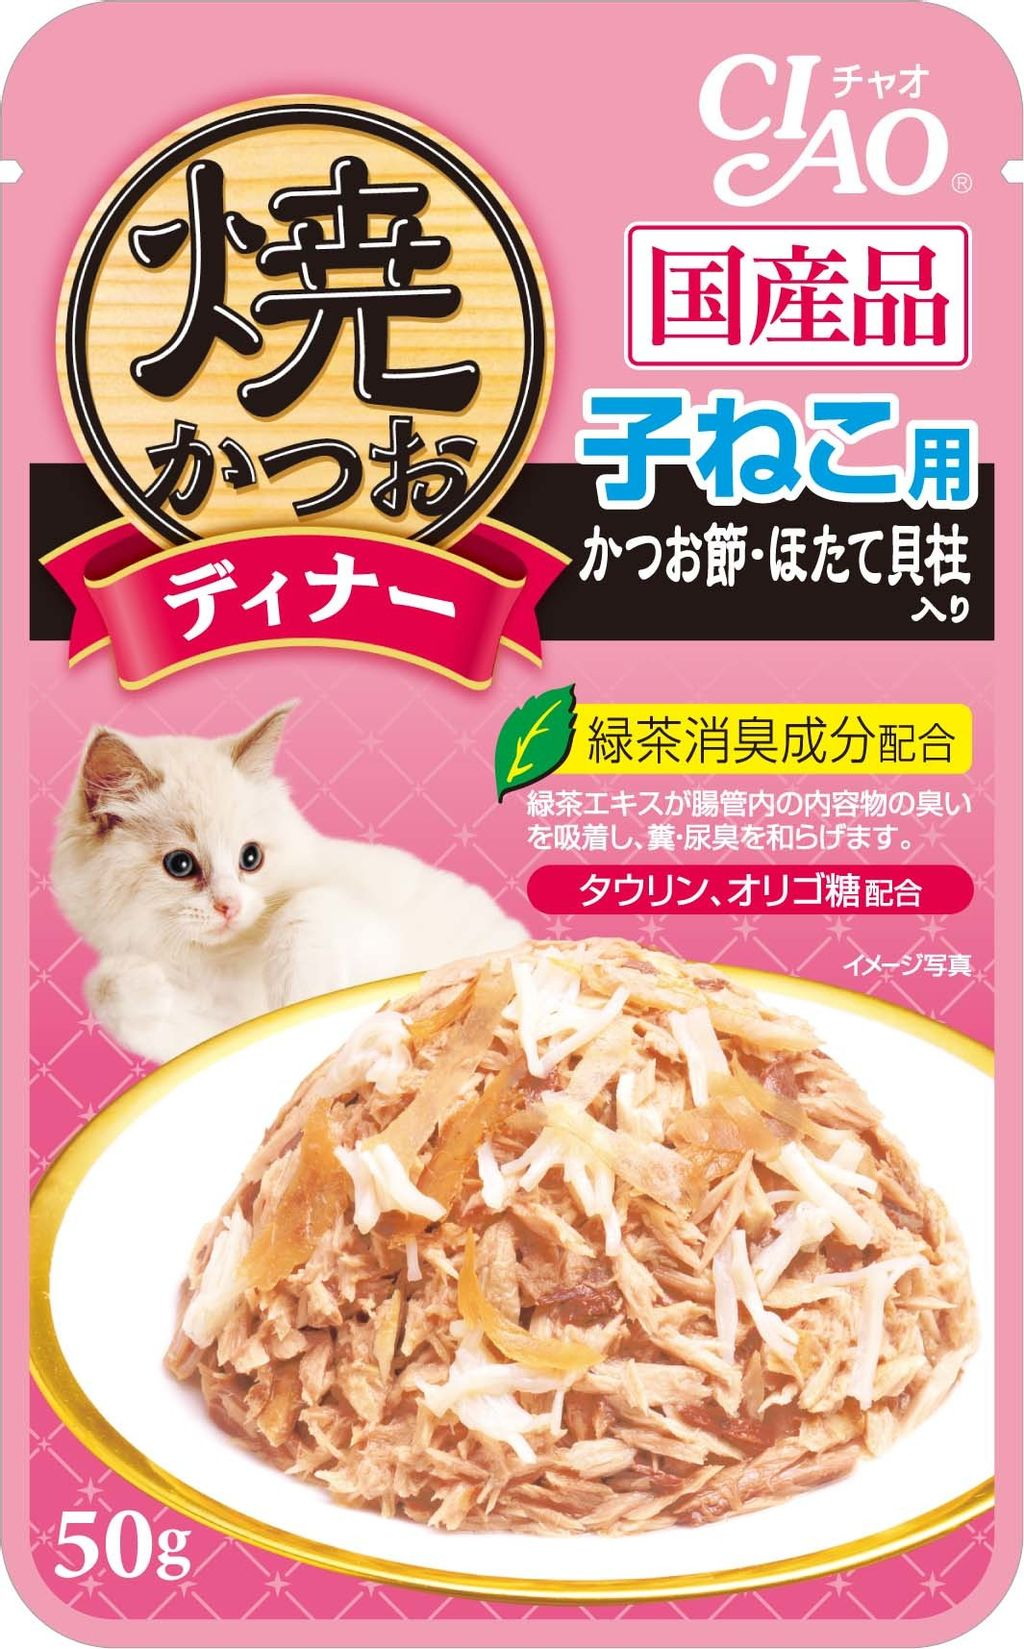 CIP235 Grilled Tuna Flakes with Sliced Bonito _ Scallop in Jelly for Kitten.jpg